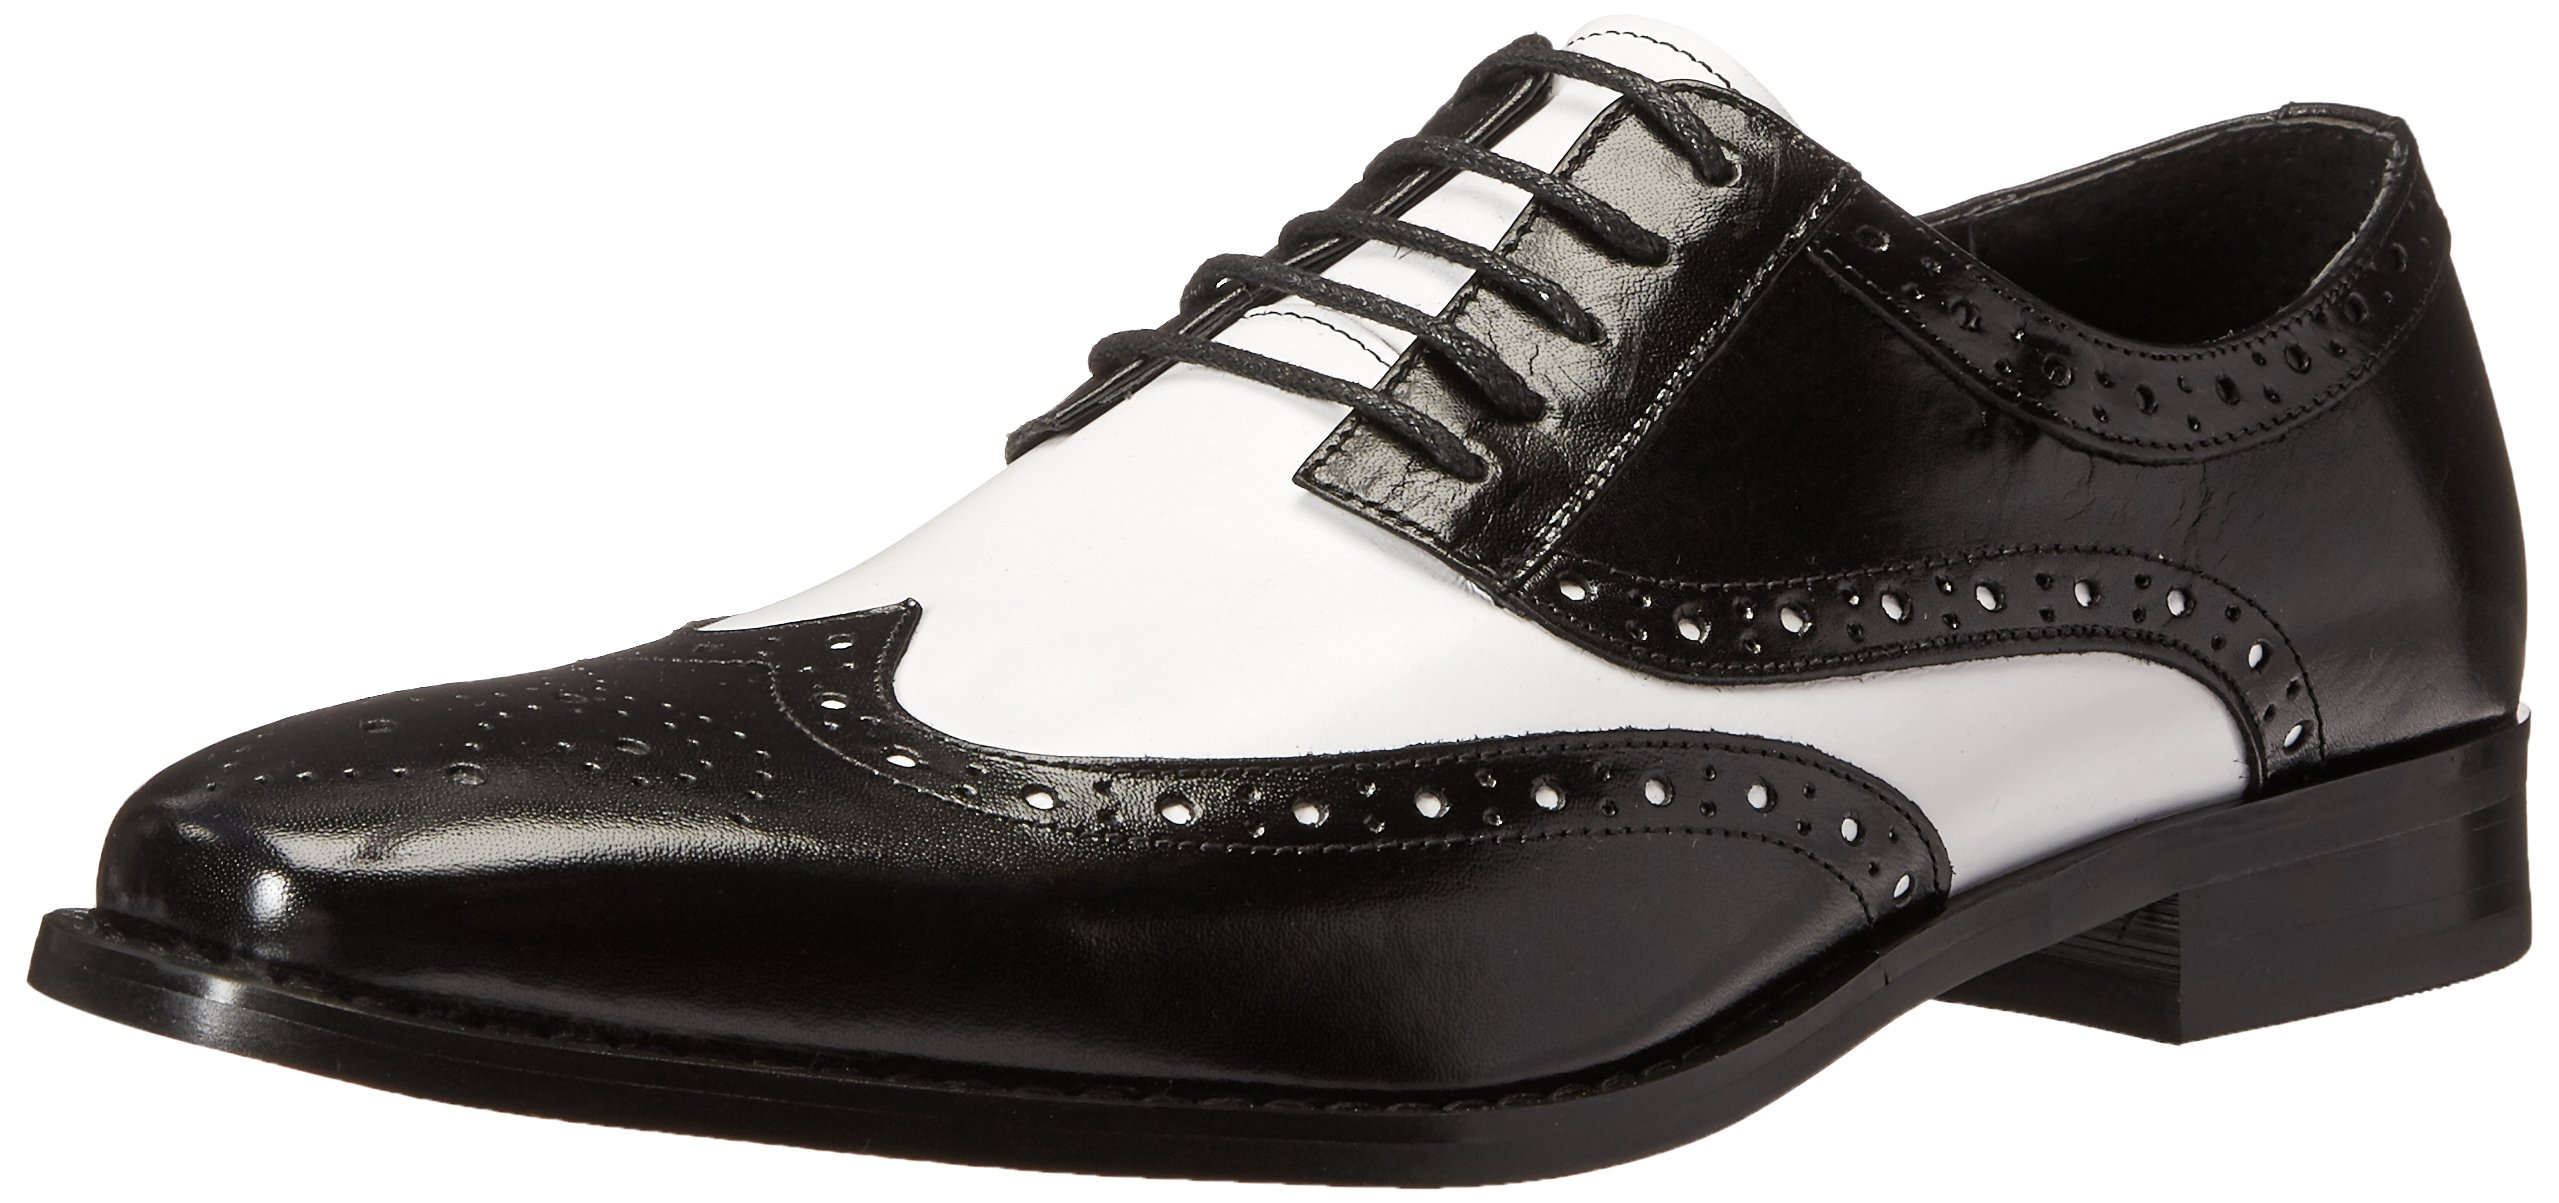 STACY ADAMS Men's Tinsley-Wingtip Oxford, Black/White, 7.5 M US